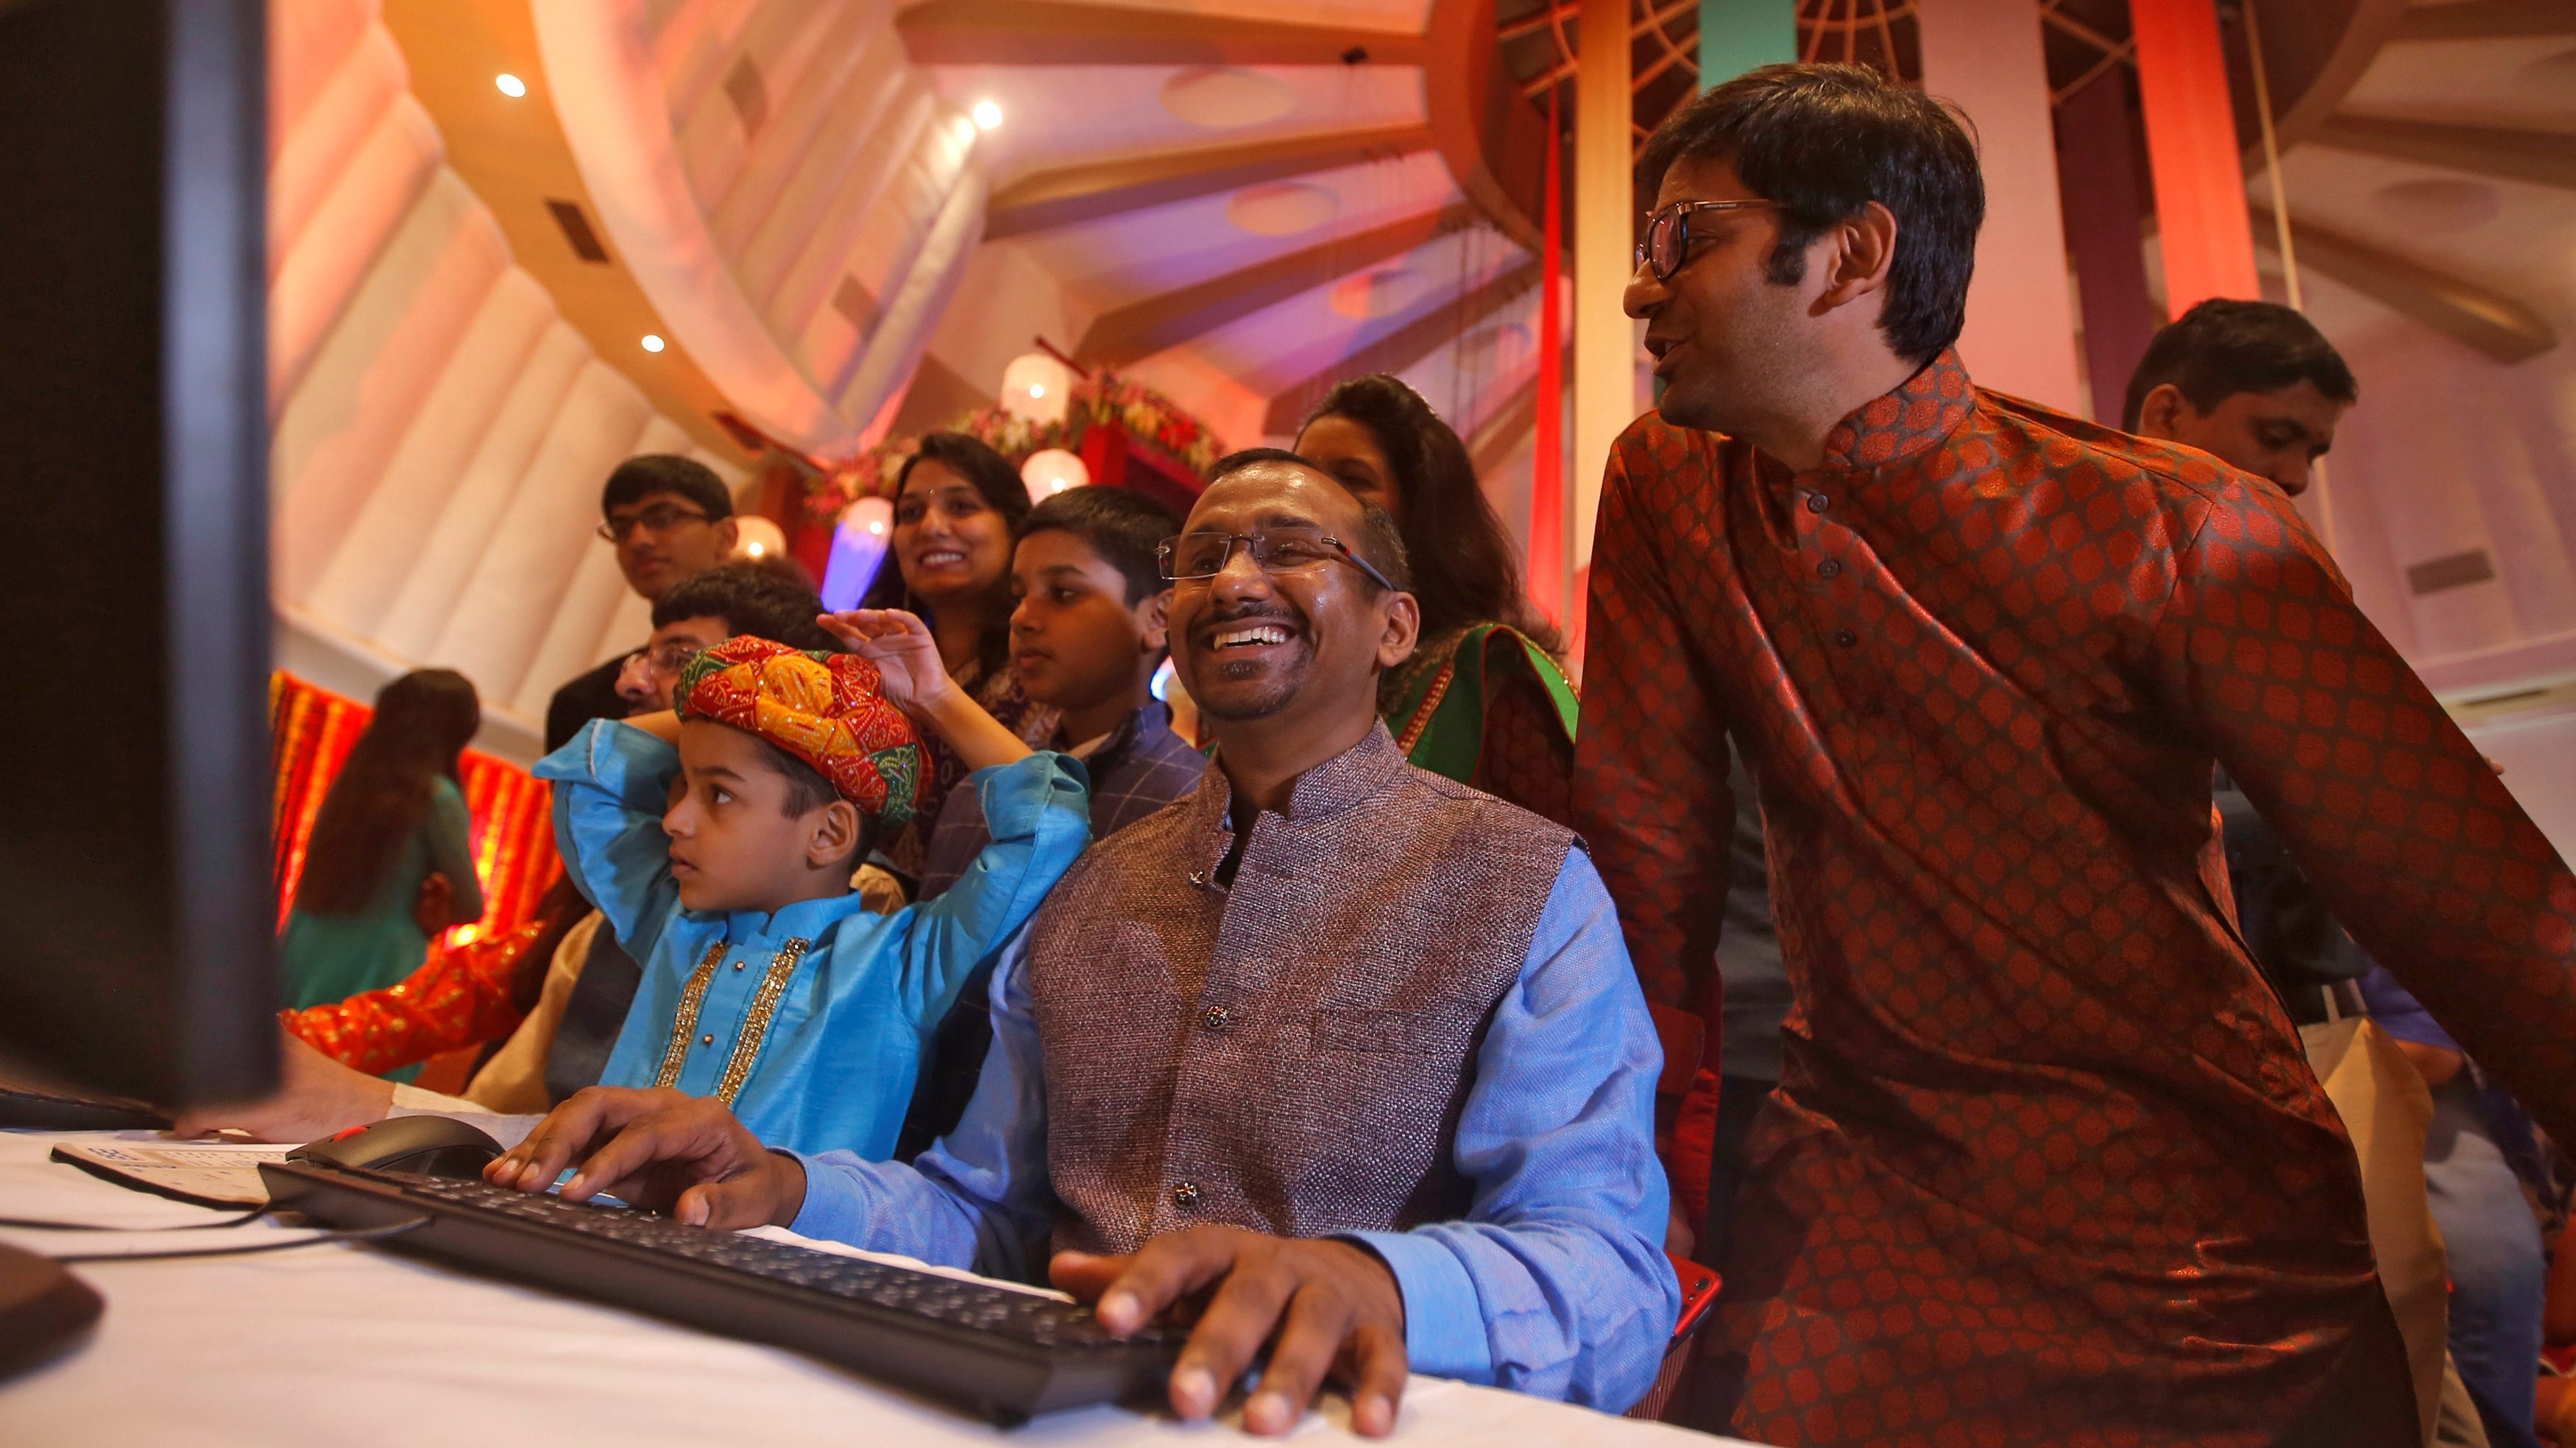 """A stockbroker trader reacts as his family watches him trading during a special """"muhurat"""" trading session for Diwali, the Hindu festival of lights, at BSE in Mumbai"""